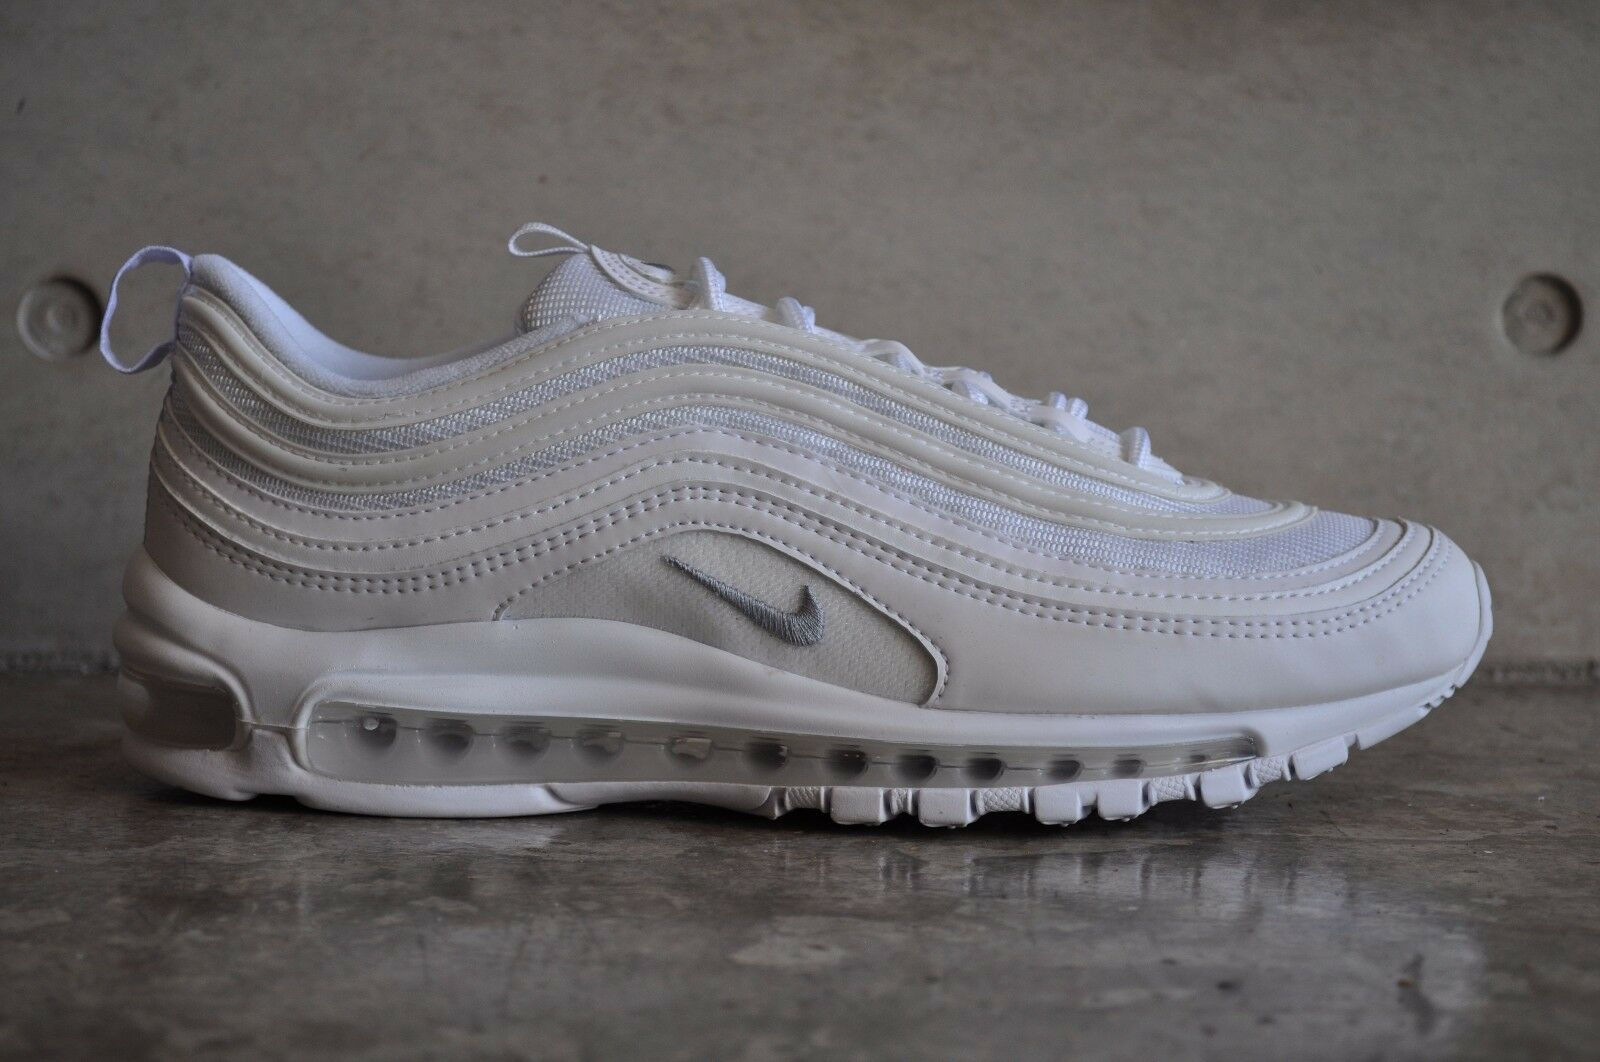 f1aa7a3588 Details about Nike Air Max 97